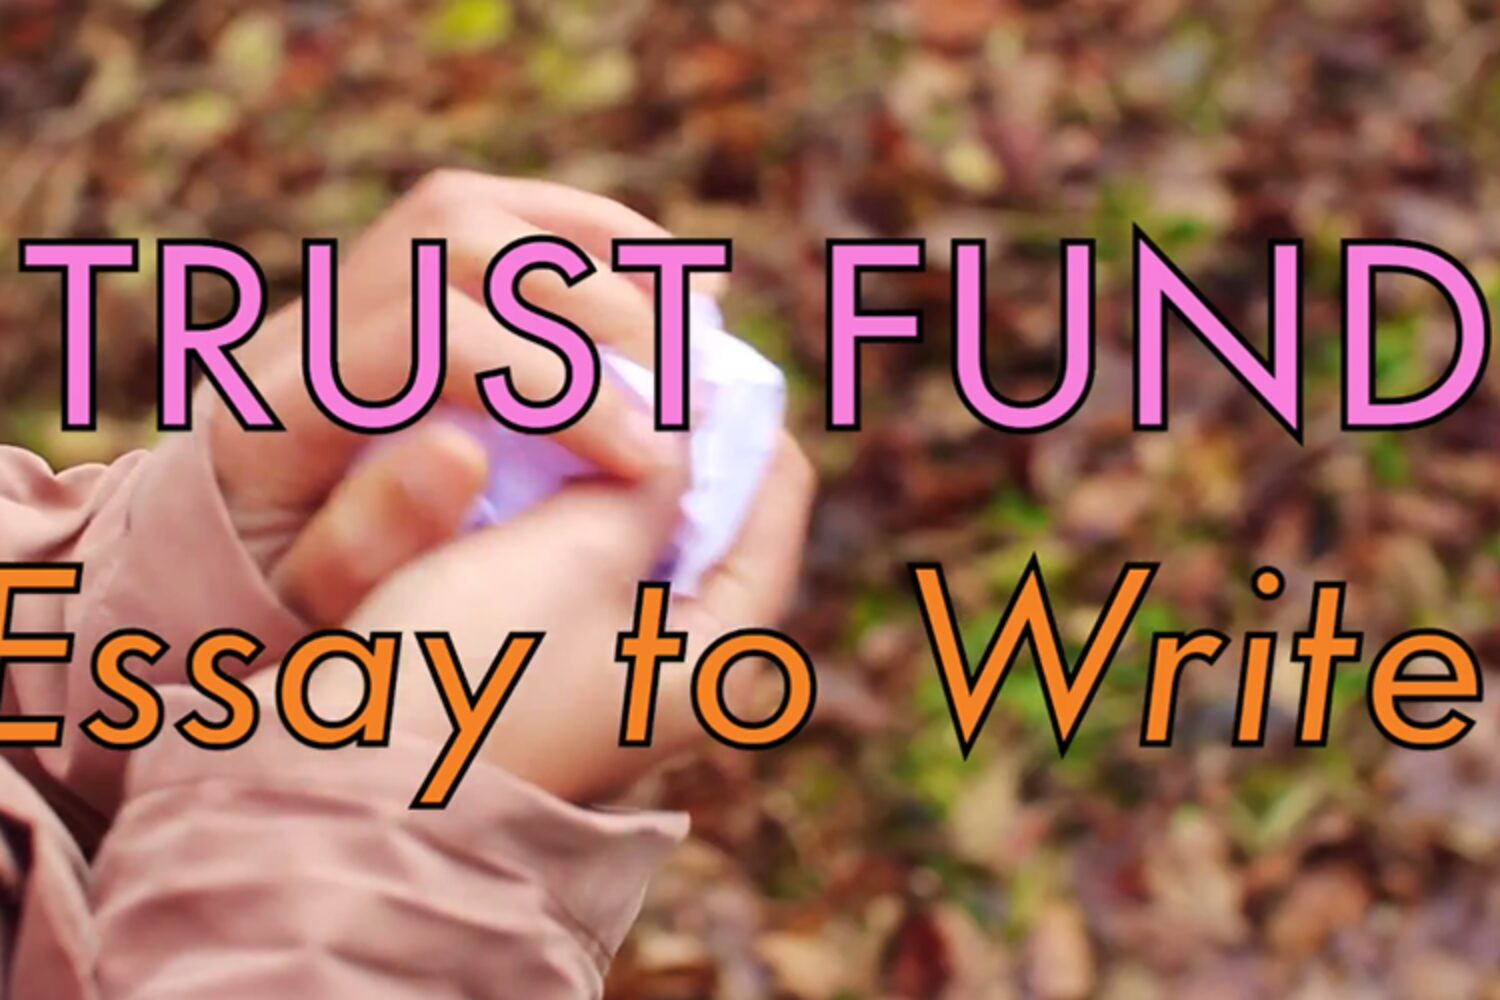 Trust Fund unveils new video for 'Essay to write'